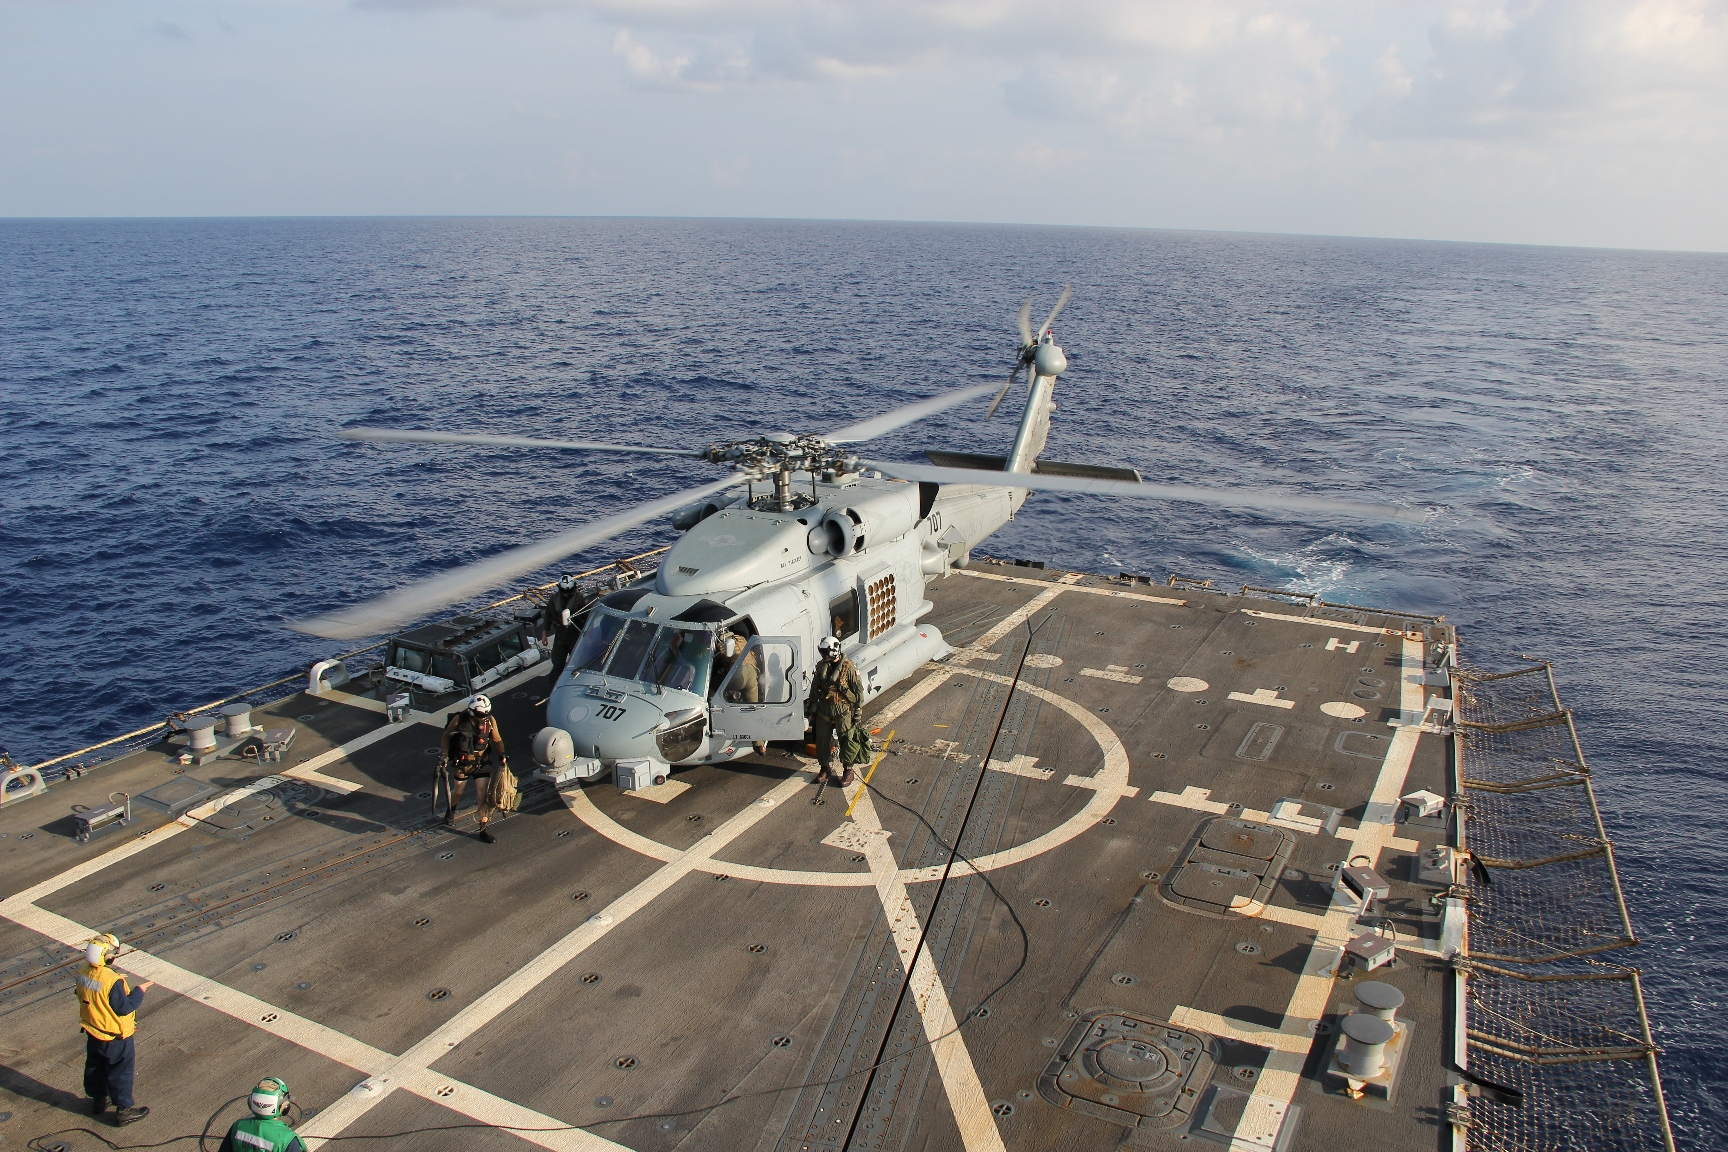 A U.S. Navy MH-60R Sea Hawk helicopter preparing to return to the search and rescue for the missing Malaysian airlines flight MH370 on March 9, 2014 at sea in the Gulf of Thailand.